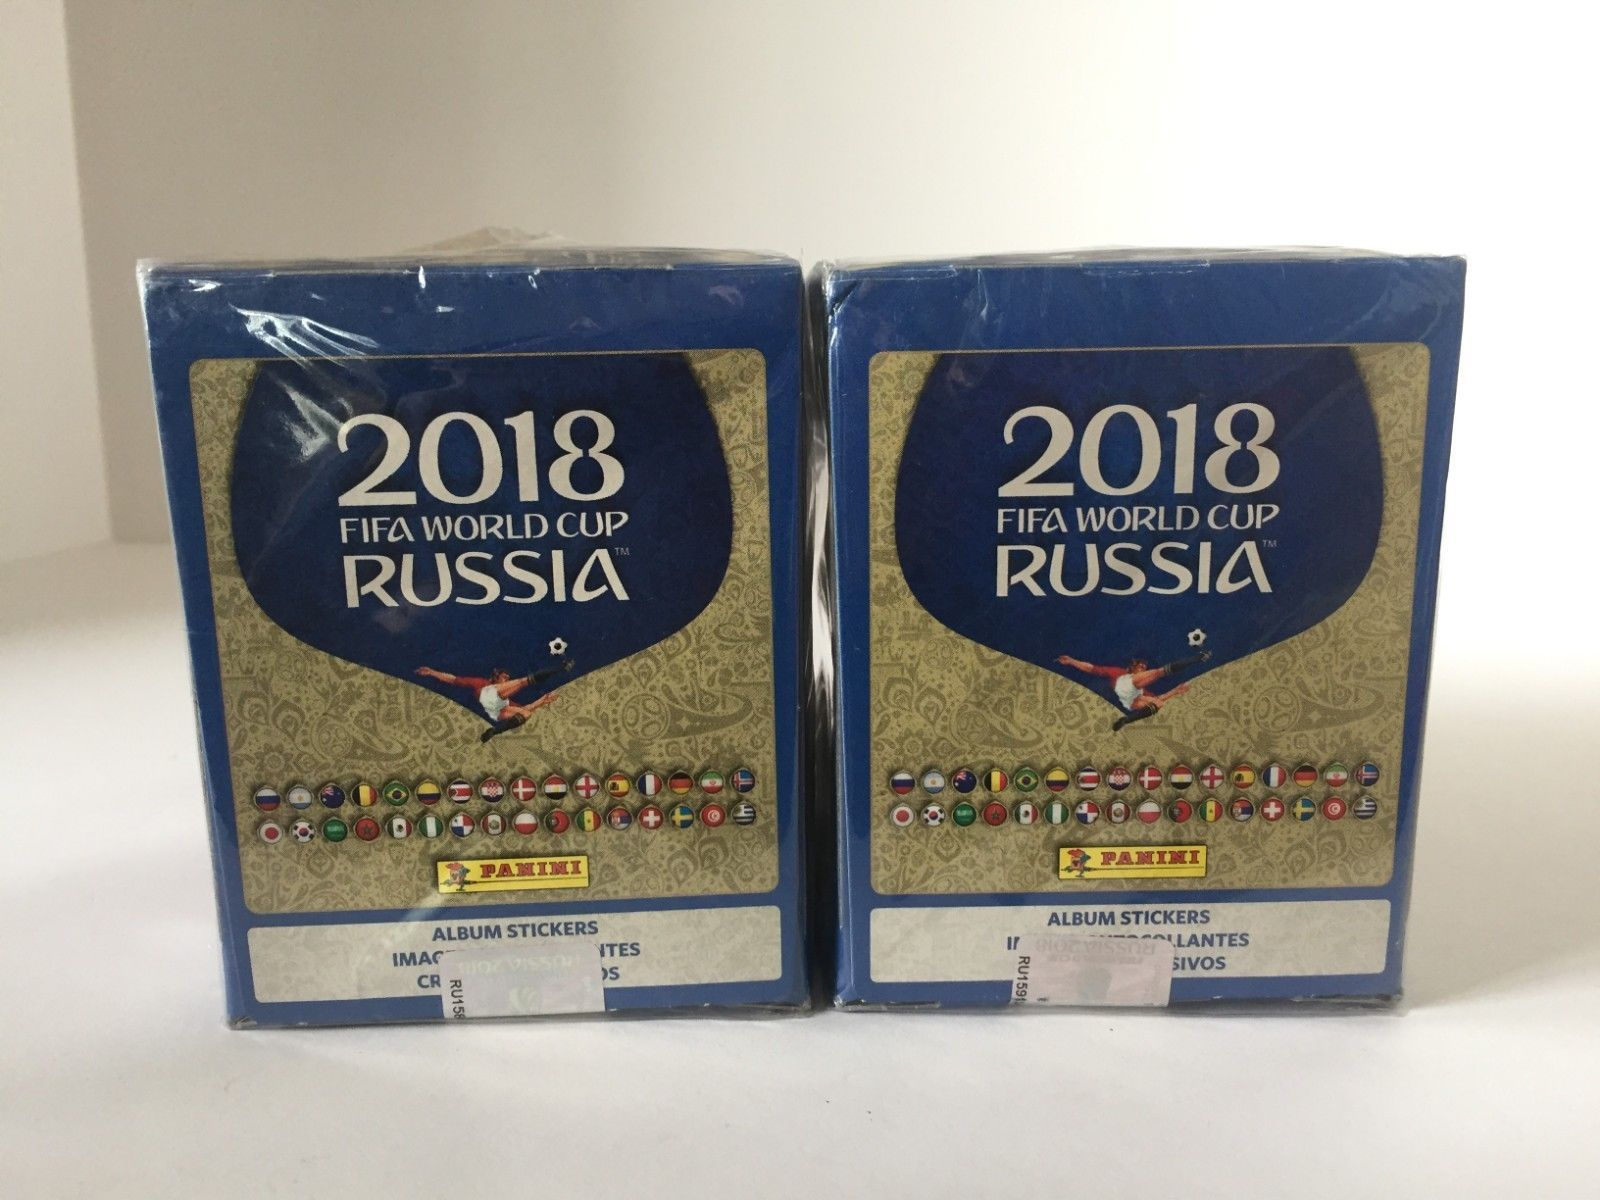 Lot X 2 2018 Fifa World Cup Russia Album Stickers 50 Packets A1 Discount Price 59 95 Free Shipping Buy It Now